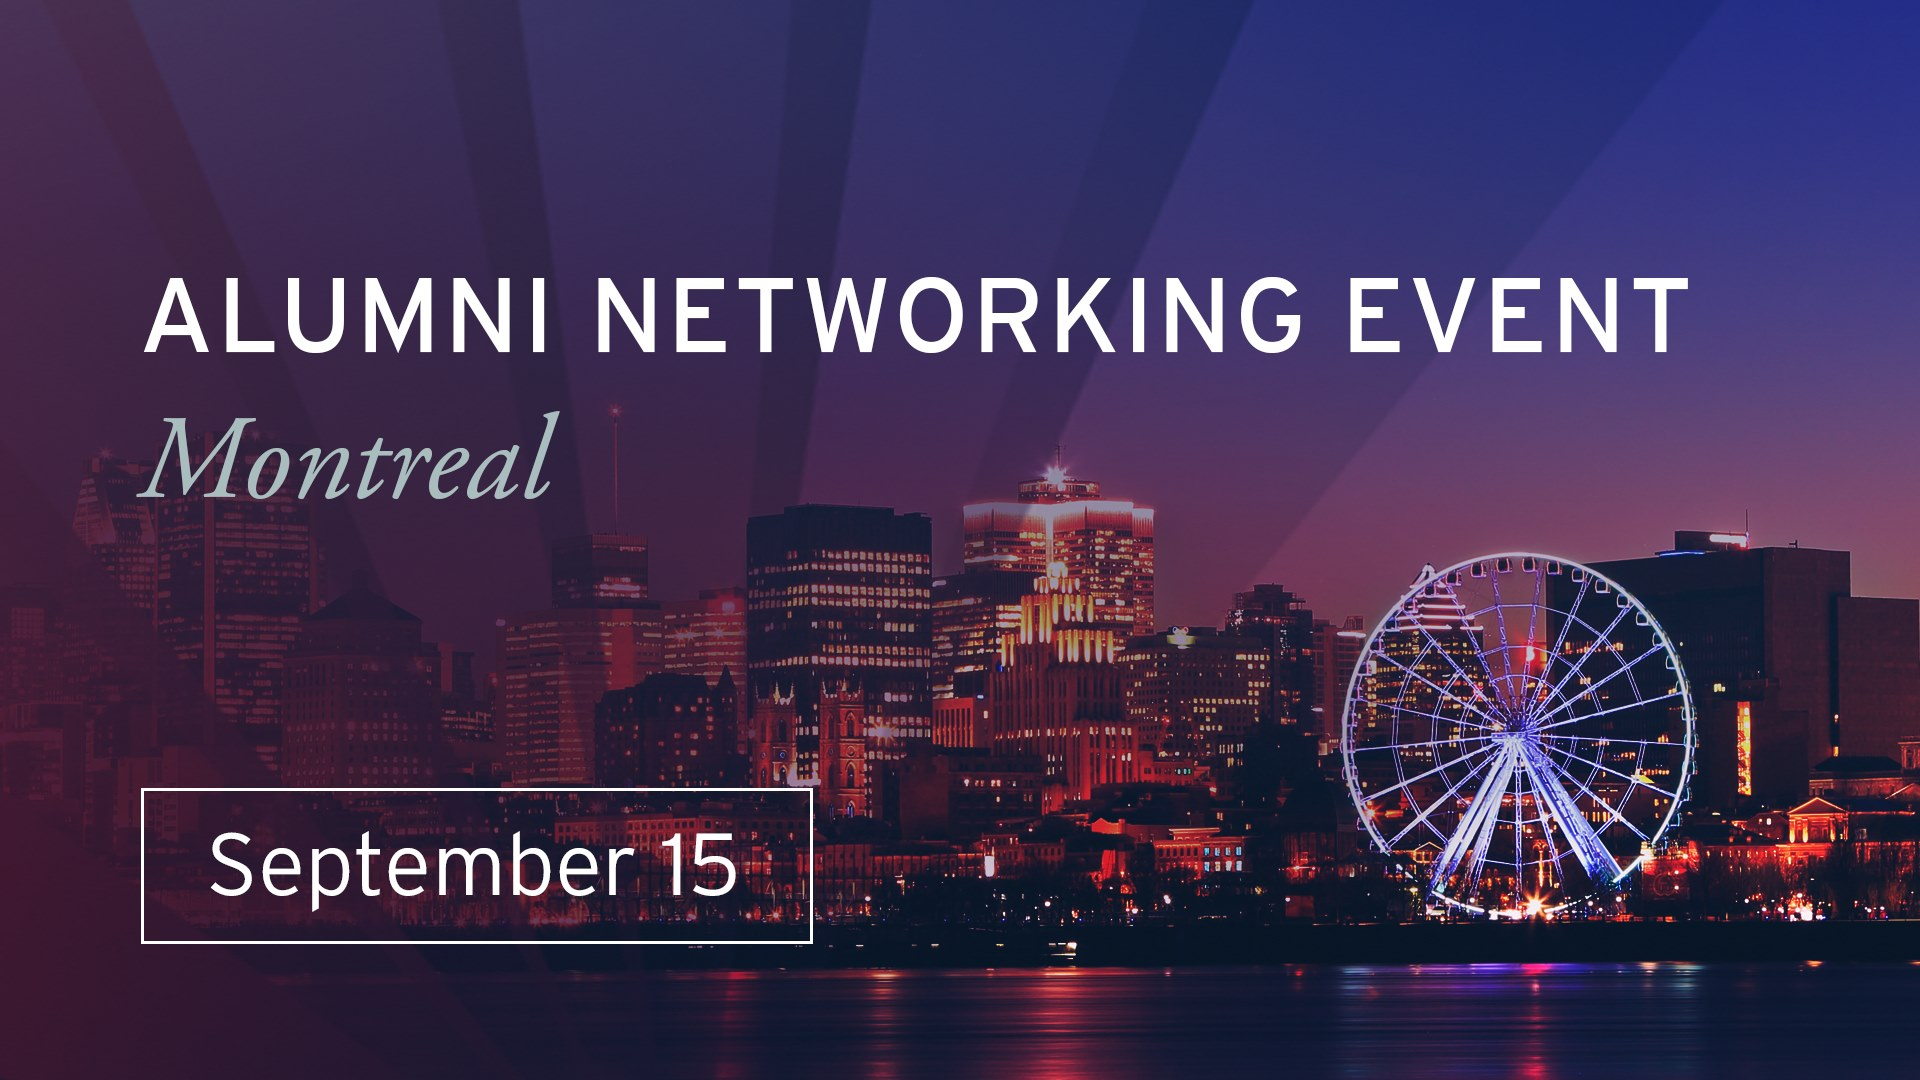 Montreal City skyline with the Kogod Alumni Networking Event date of September 15